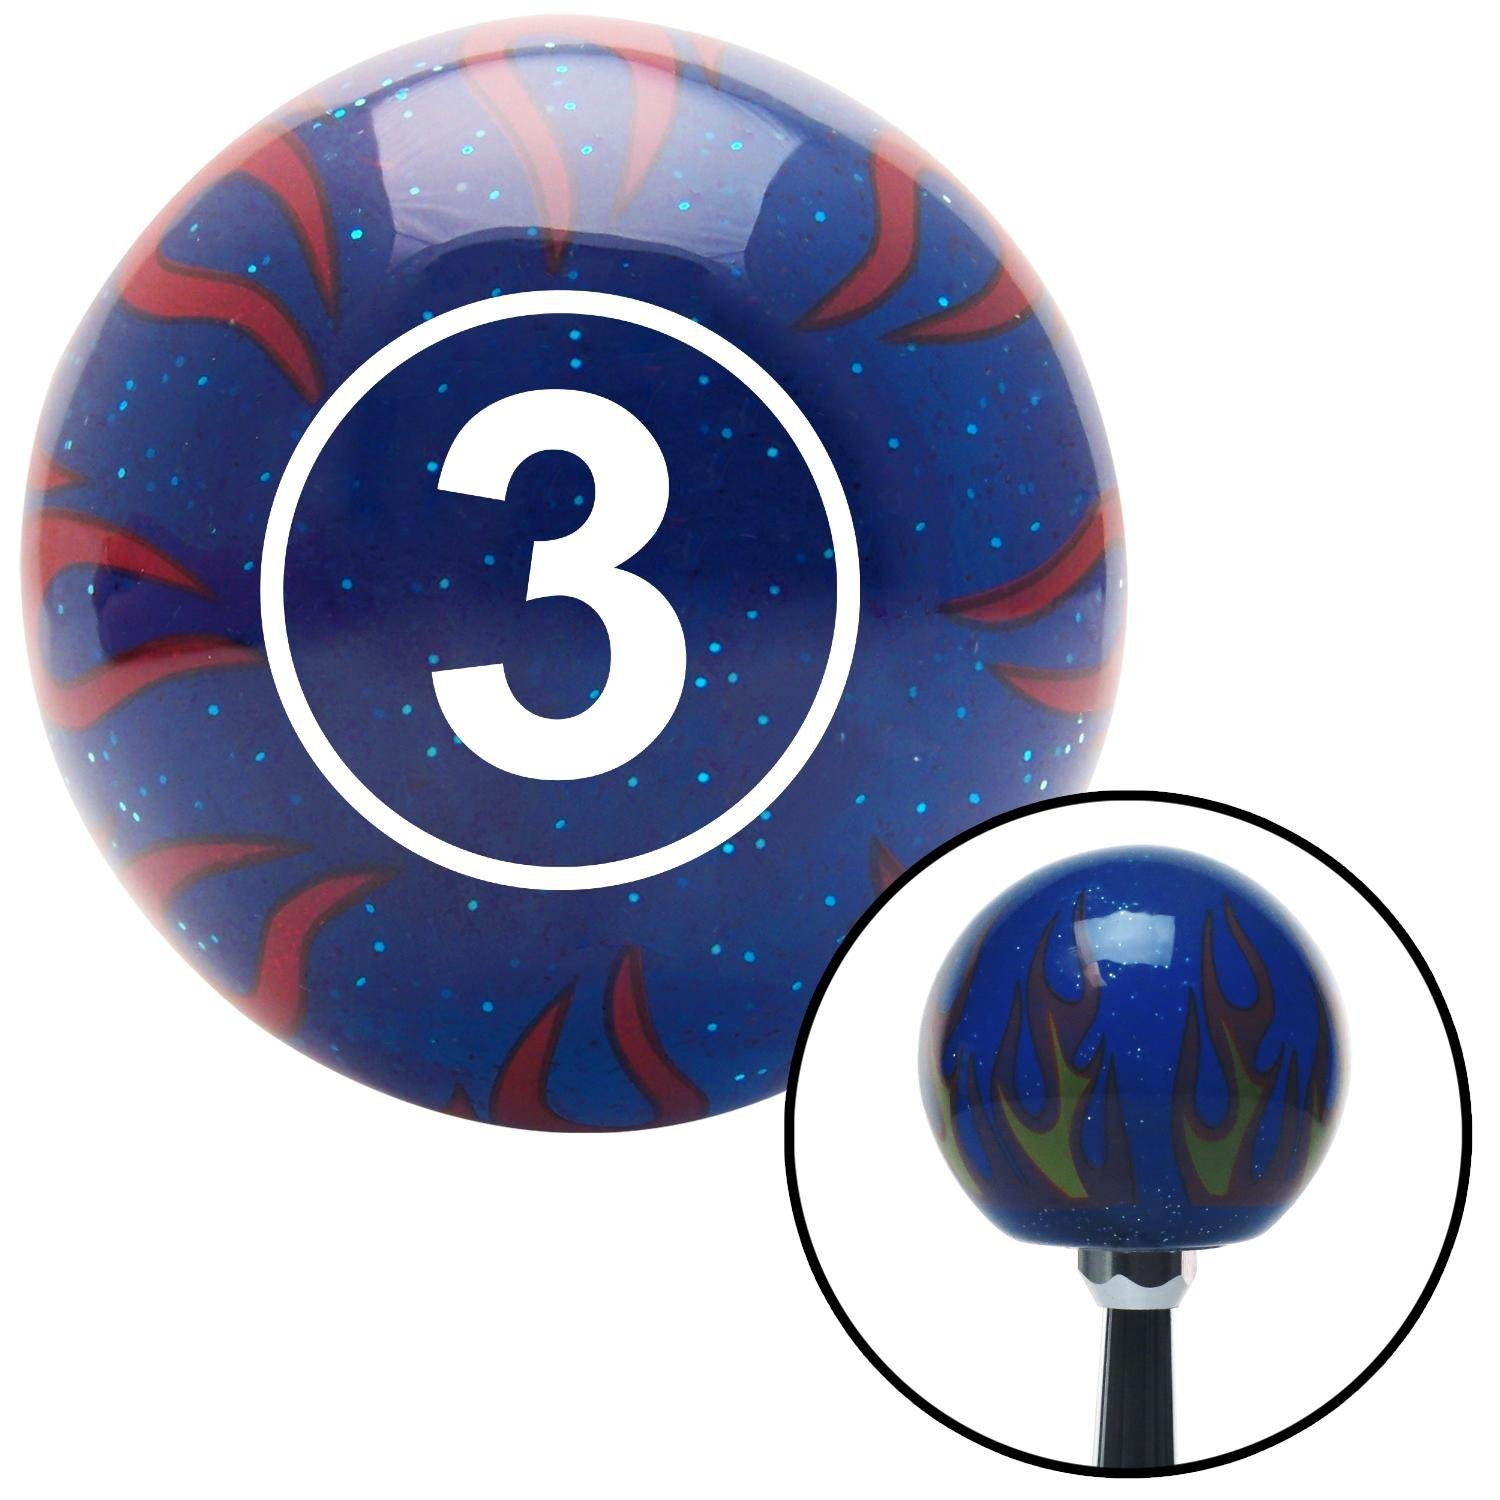 White Ball #3 American Shifter 244529 Blue Flame Metal Flake Shift Knob with M16 x 1.5 Insert